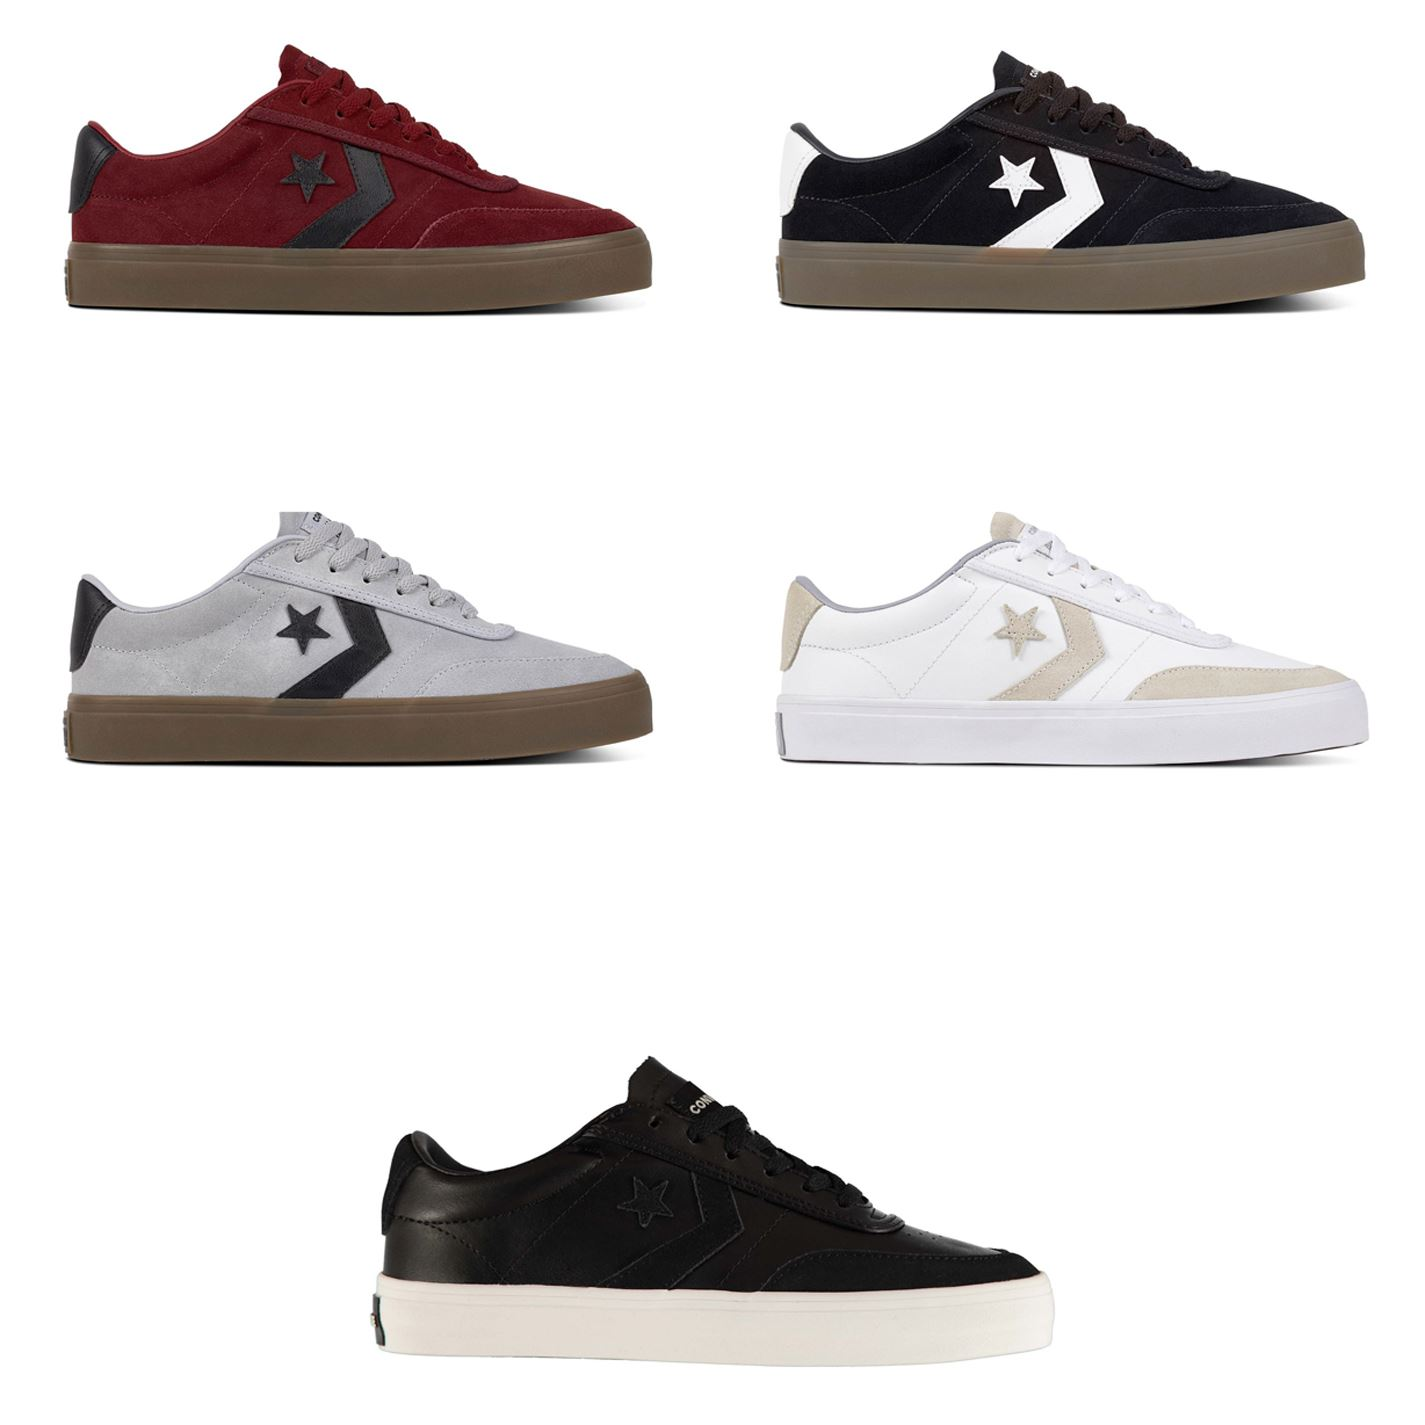 Details about Converse Courtland Trainers Mens Athleisure Footwear Shoes Sneakers